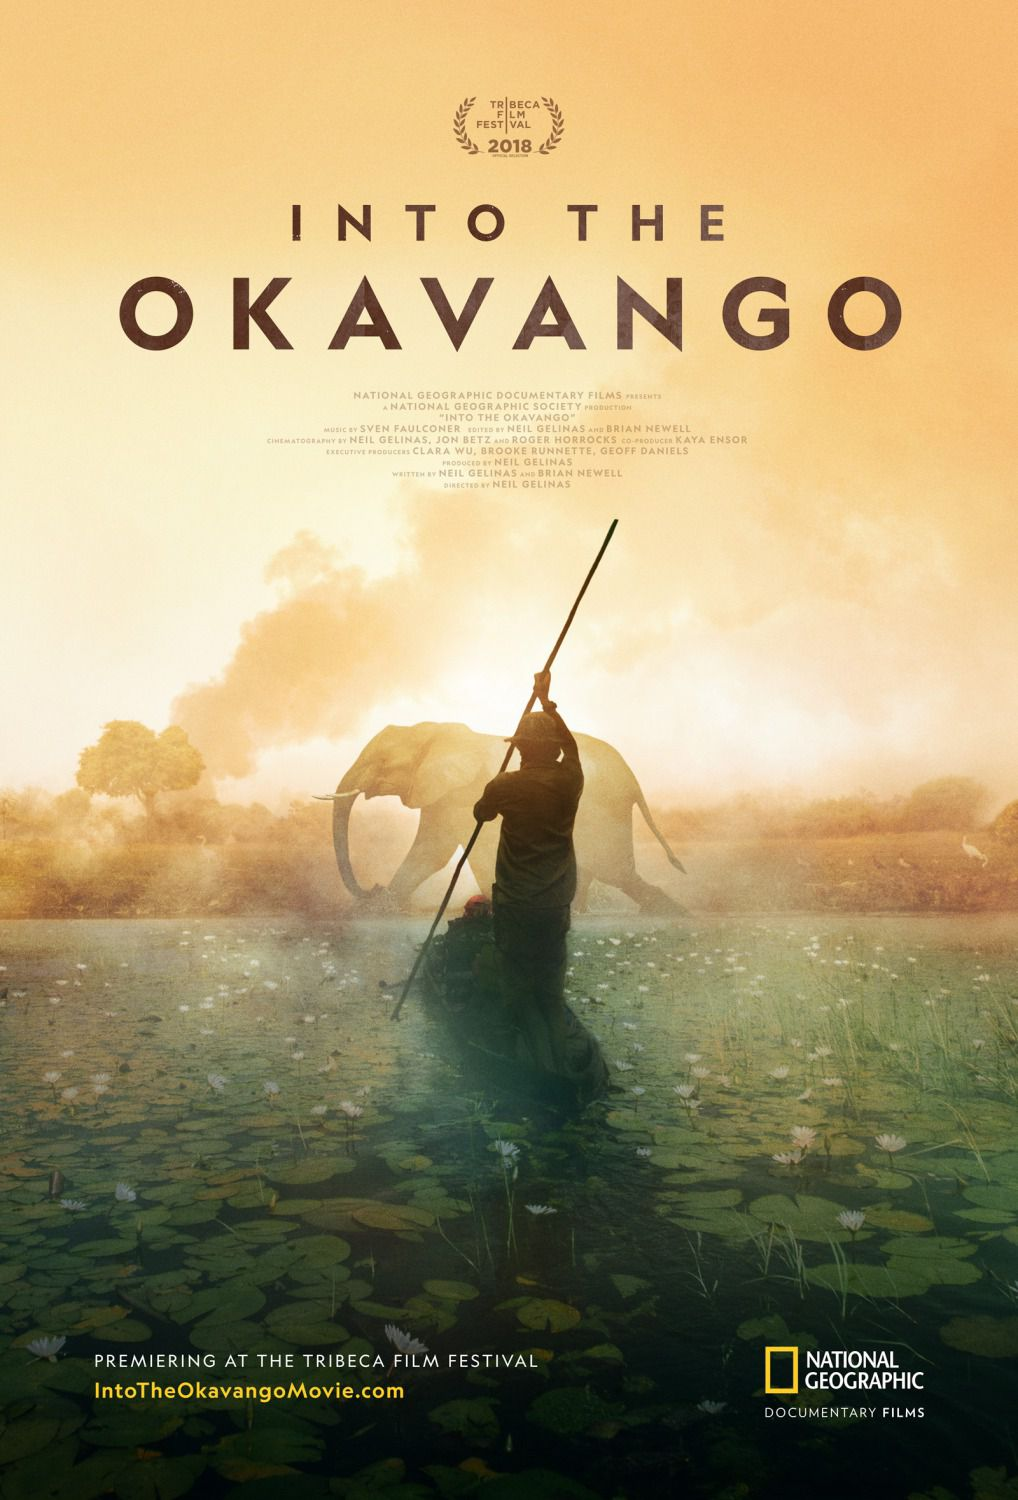 Into the Okavango - film poster 2018 savana elephant